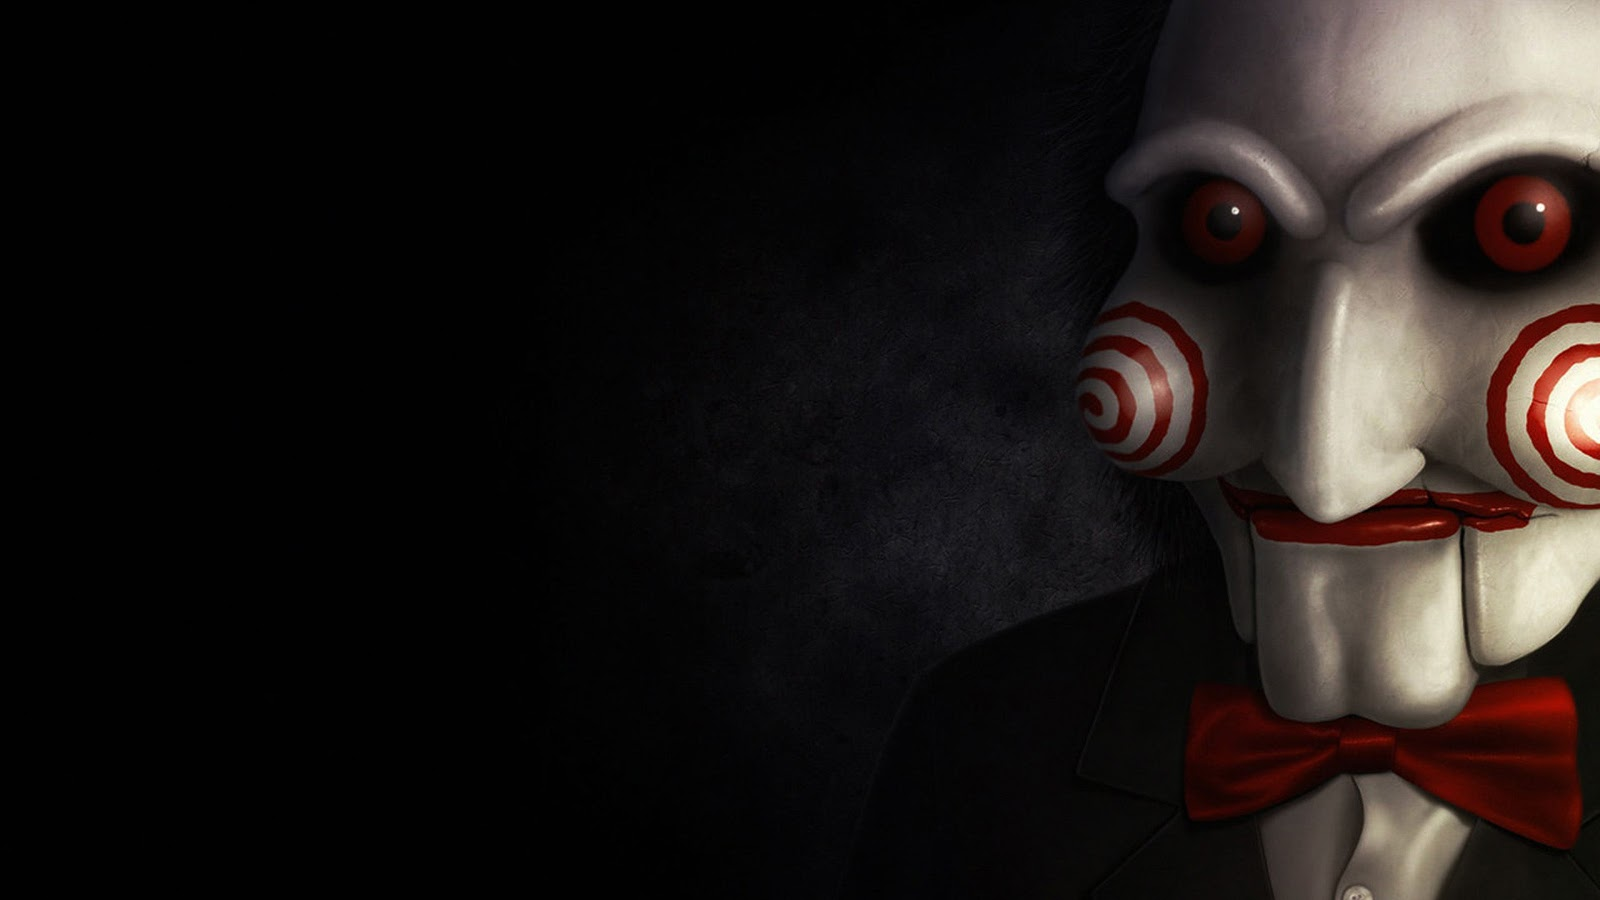 Wallpapers PC, Horror movie, saw